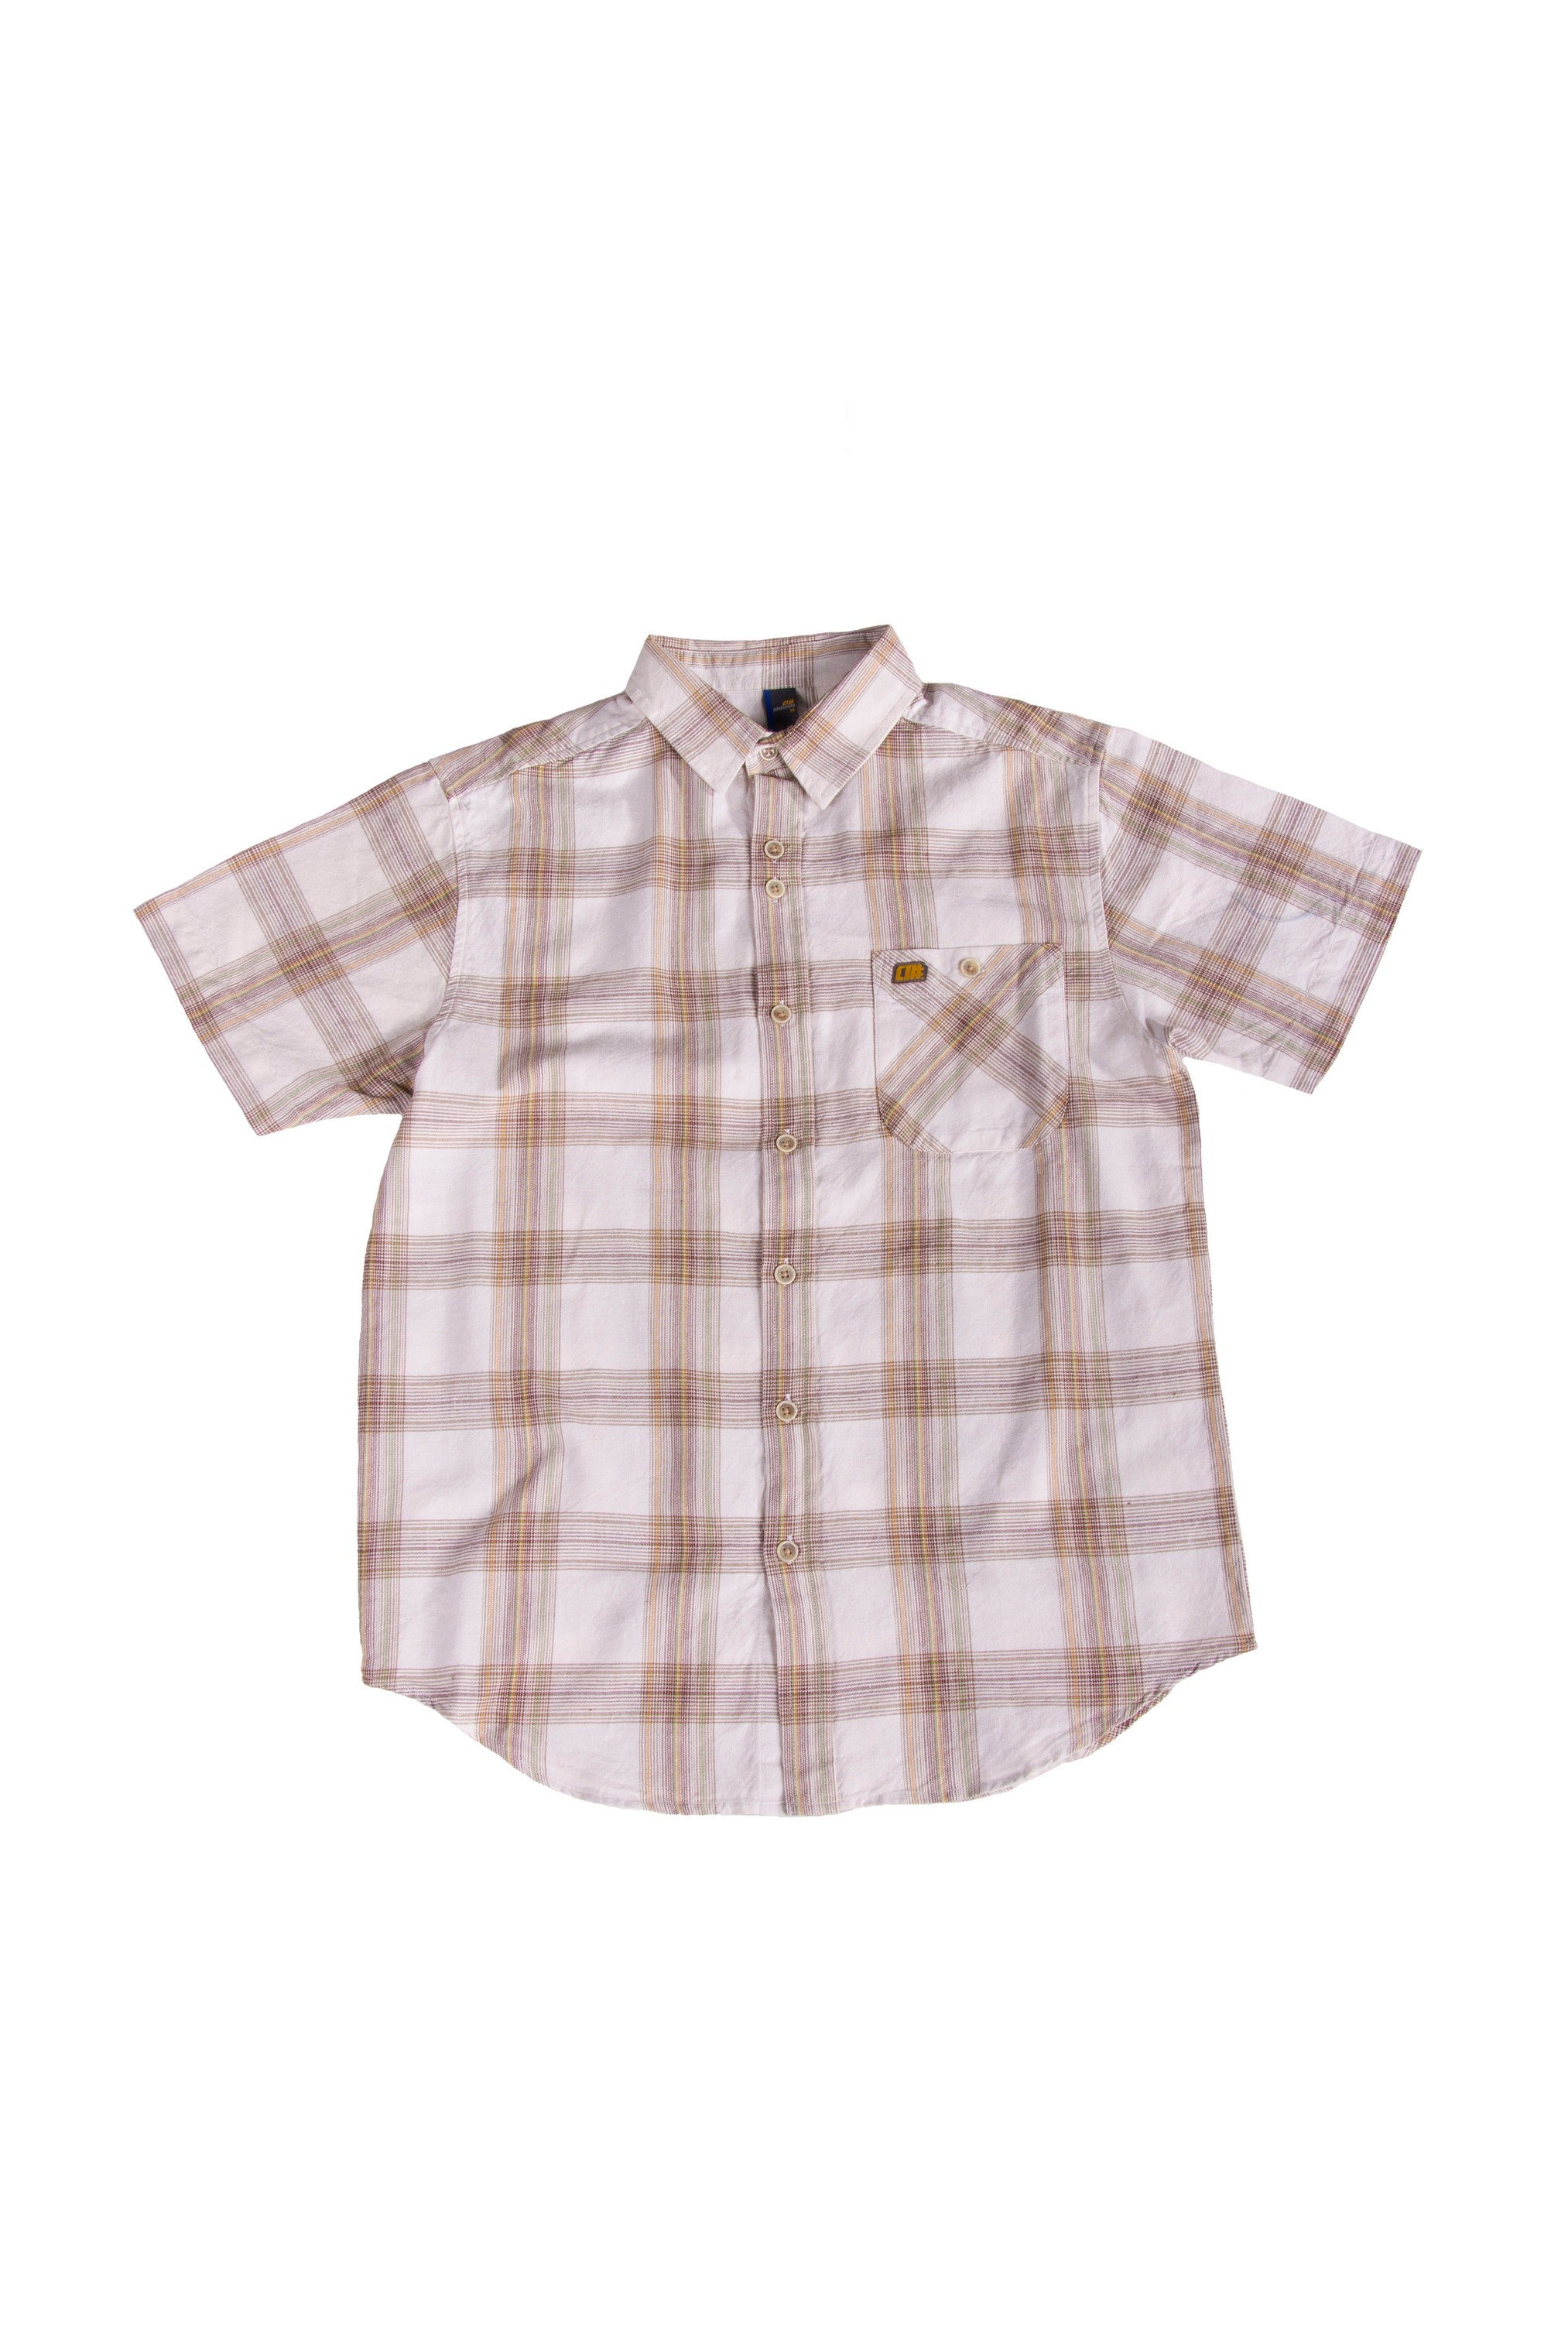 Alphanumeric Samara Plaid Short-sleeve